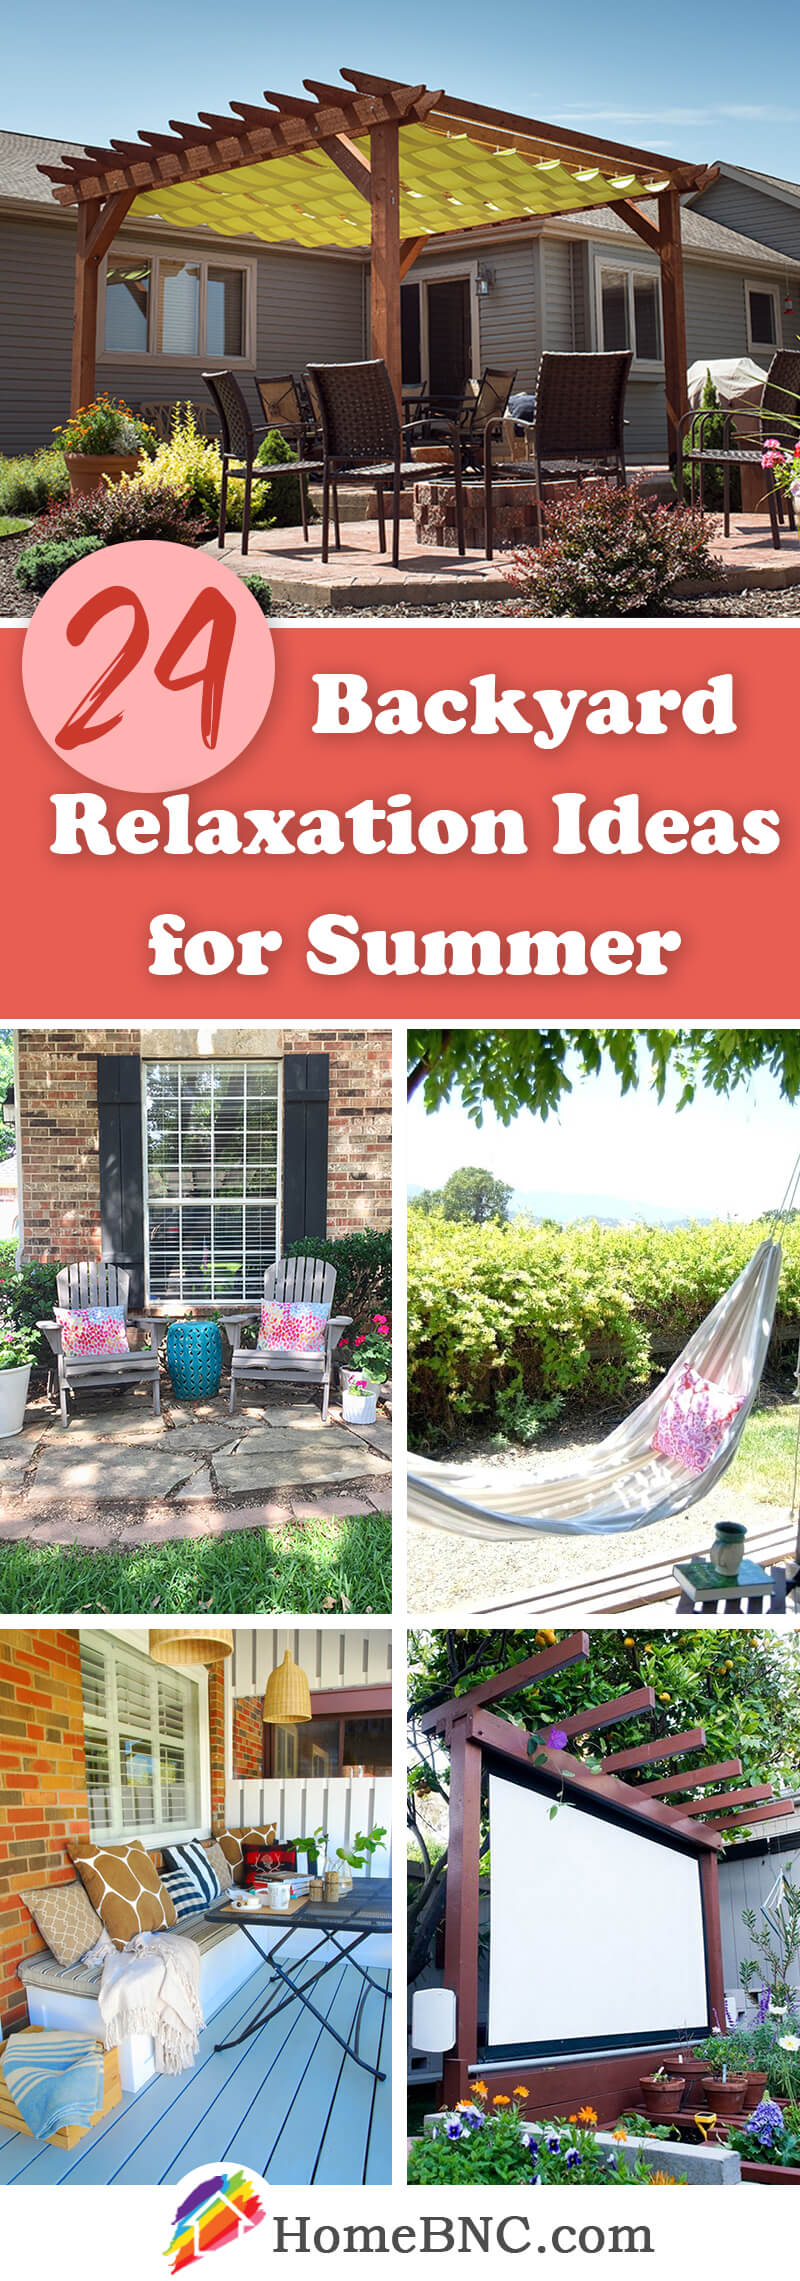 Backyard Relaxation Ideas